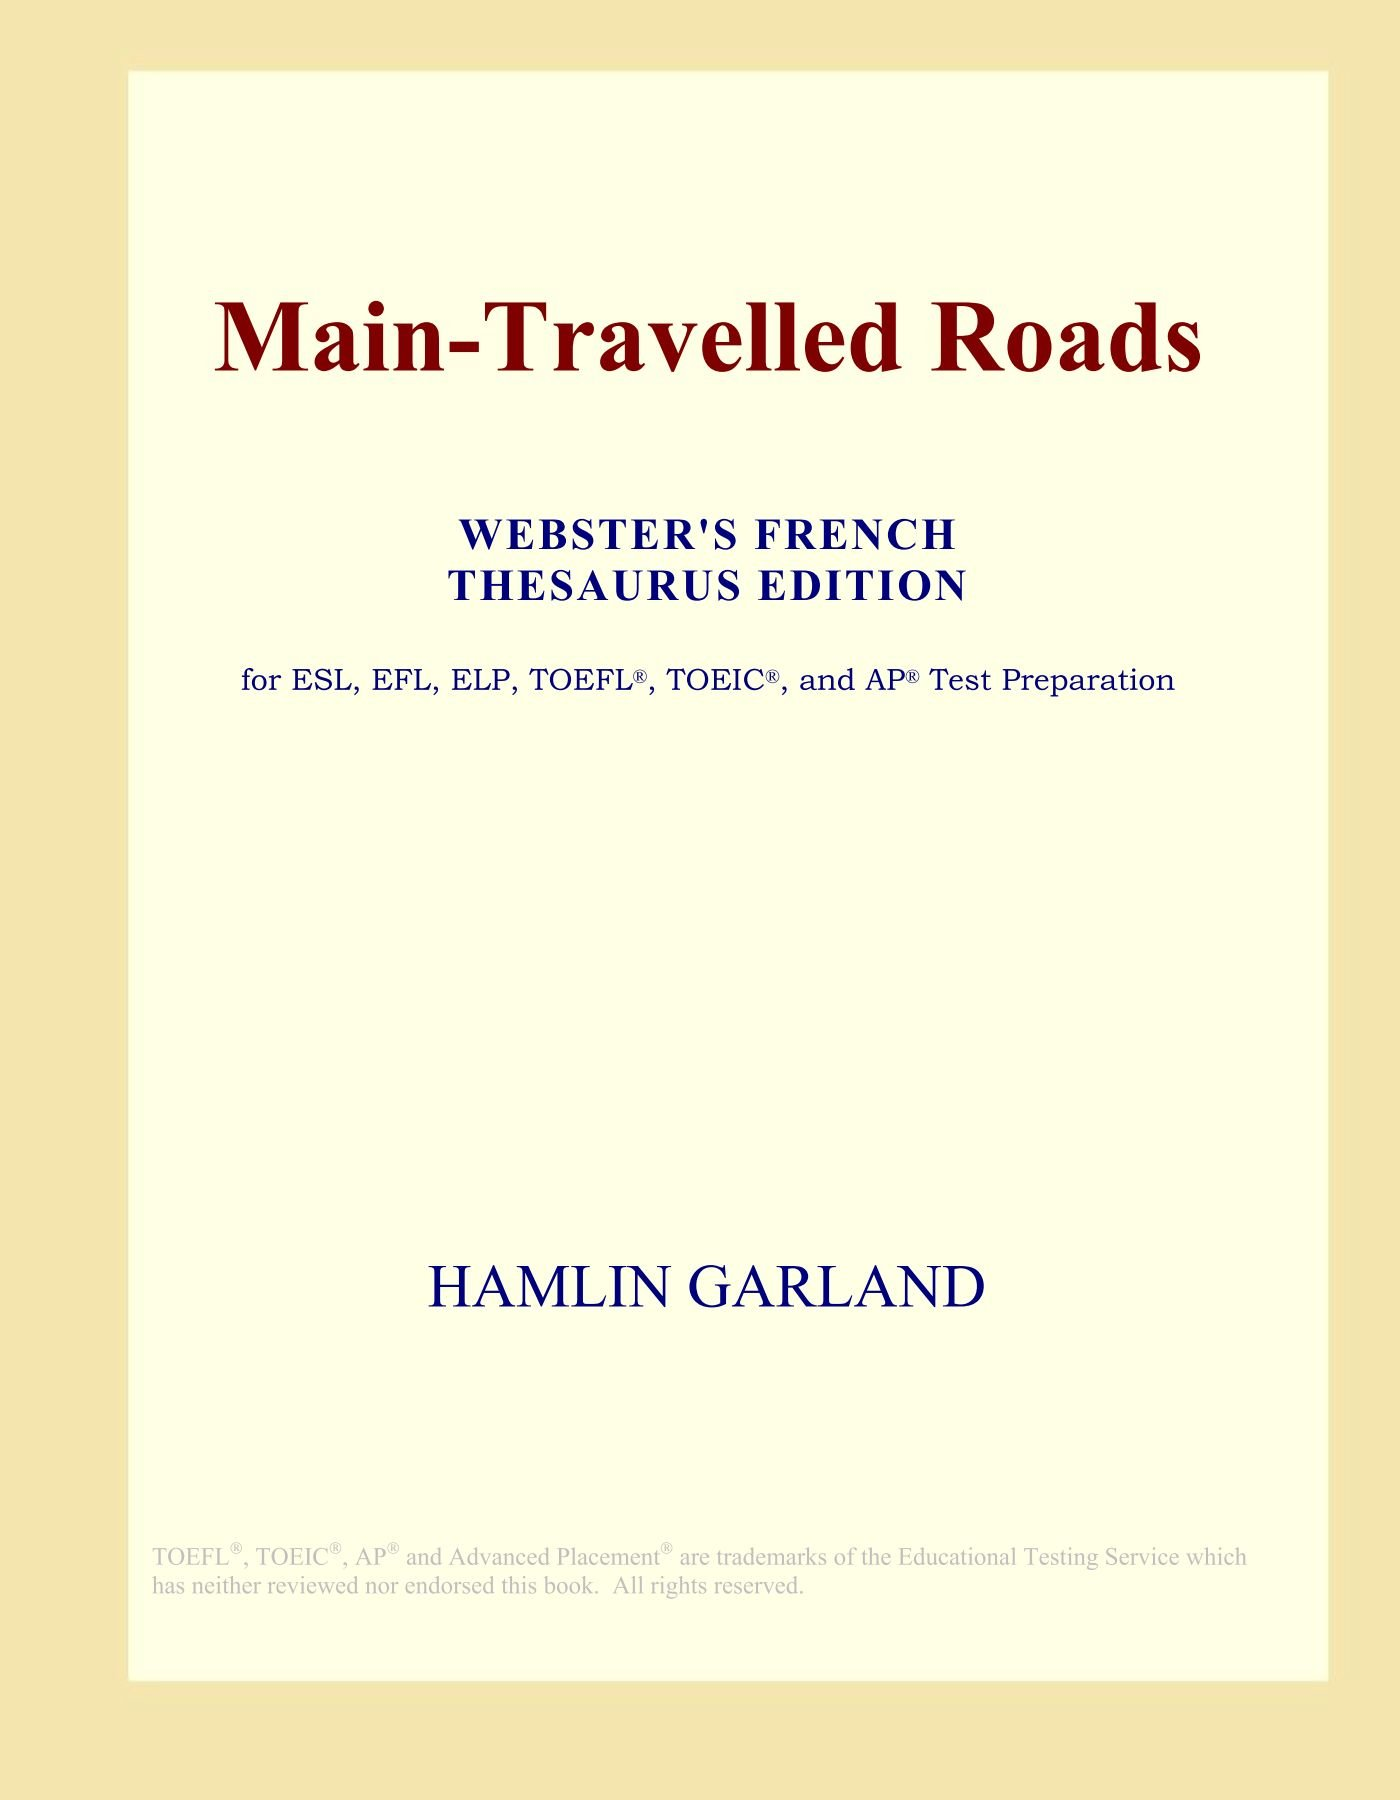 Download Main-Travelled Roads (Webster's French Thesaurus Edition) ebook